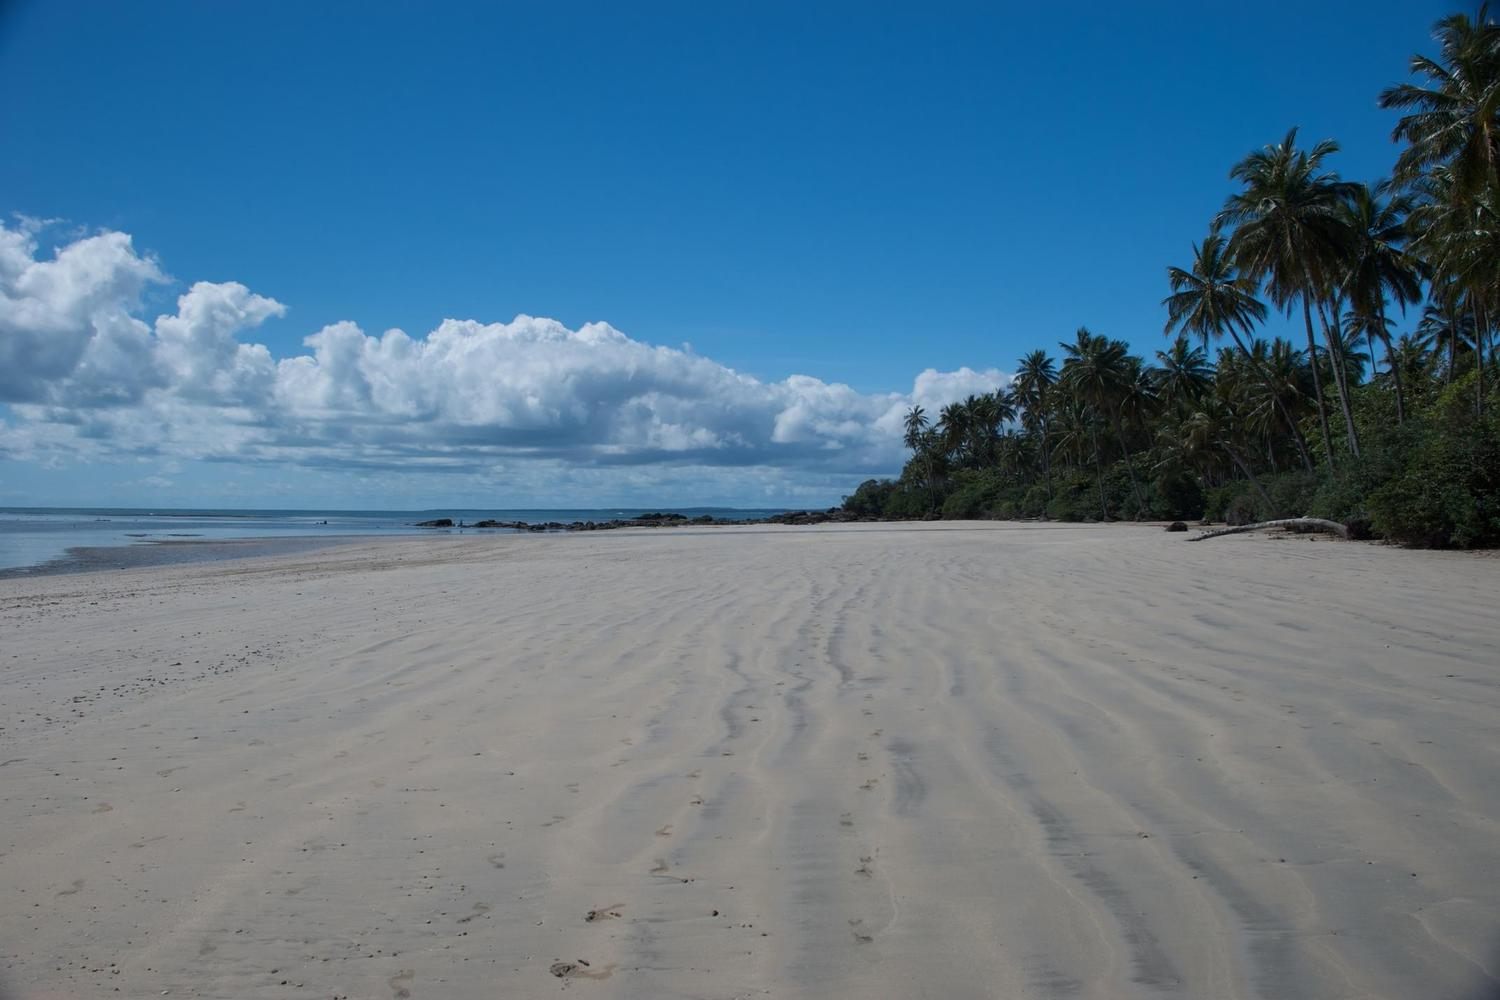 Enormous, empty beaches of Boipeba Island in Bahia